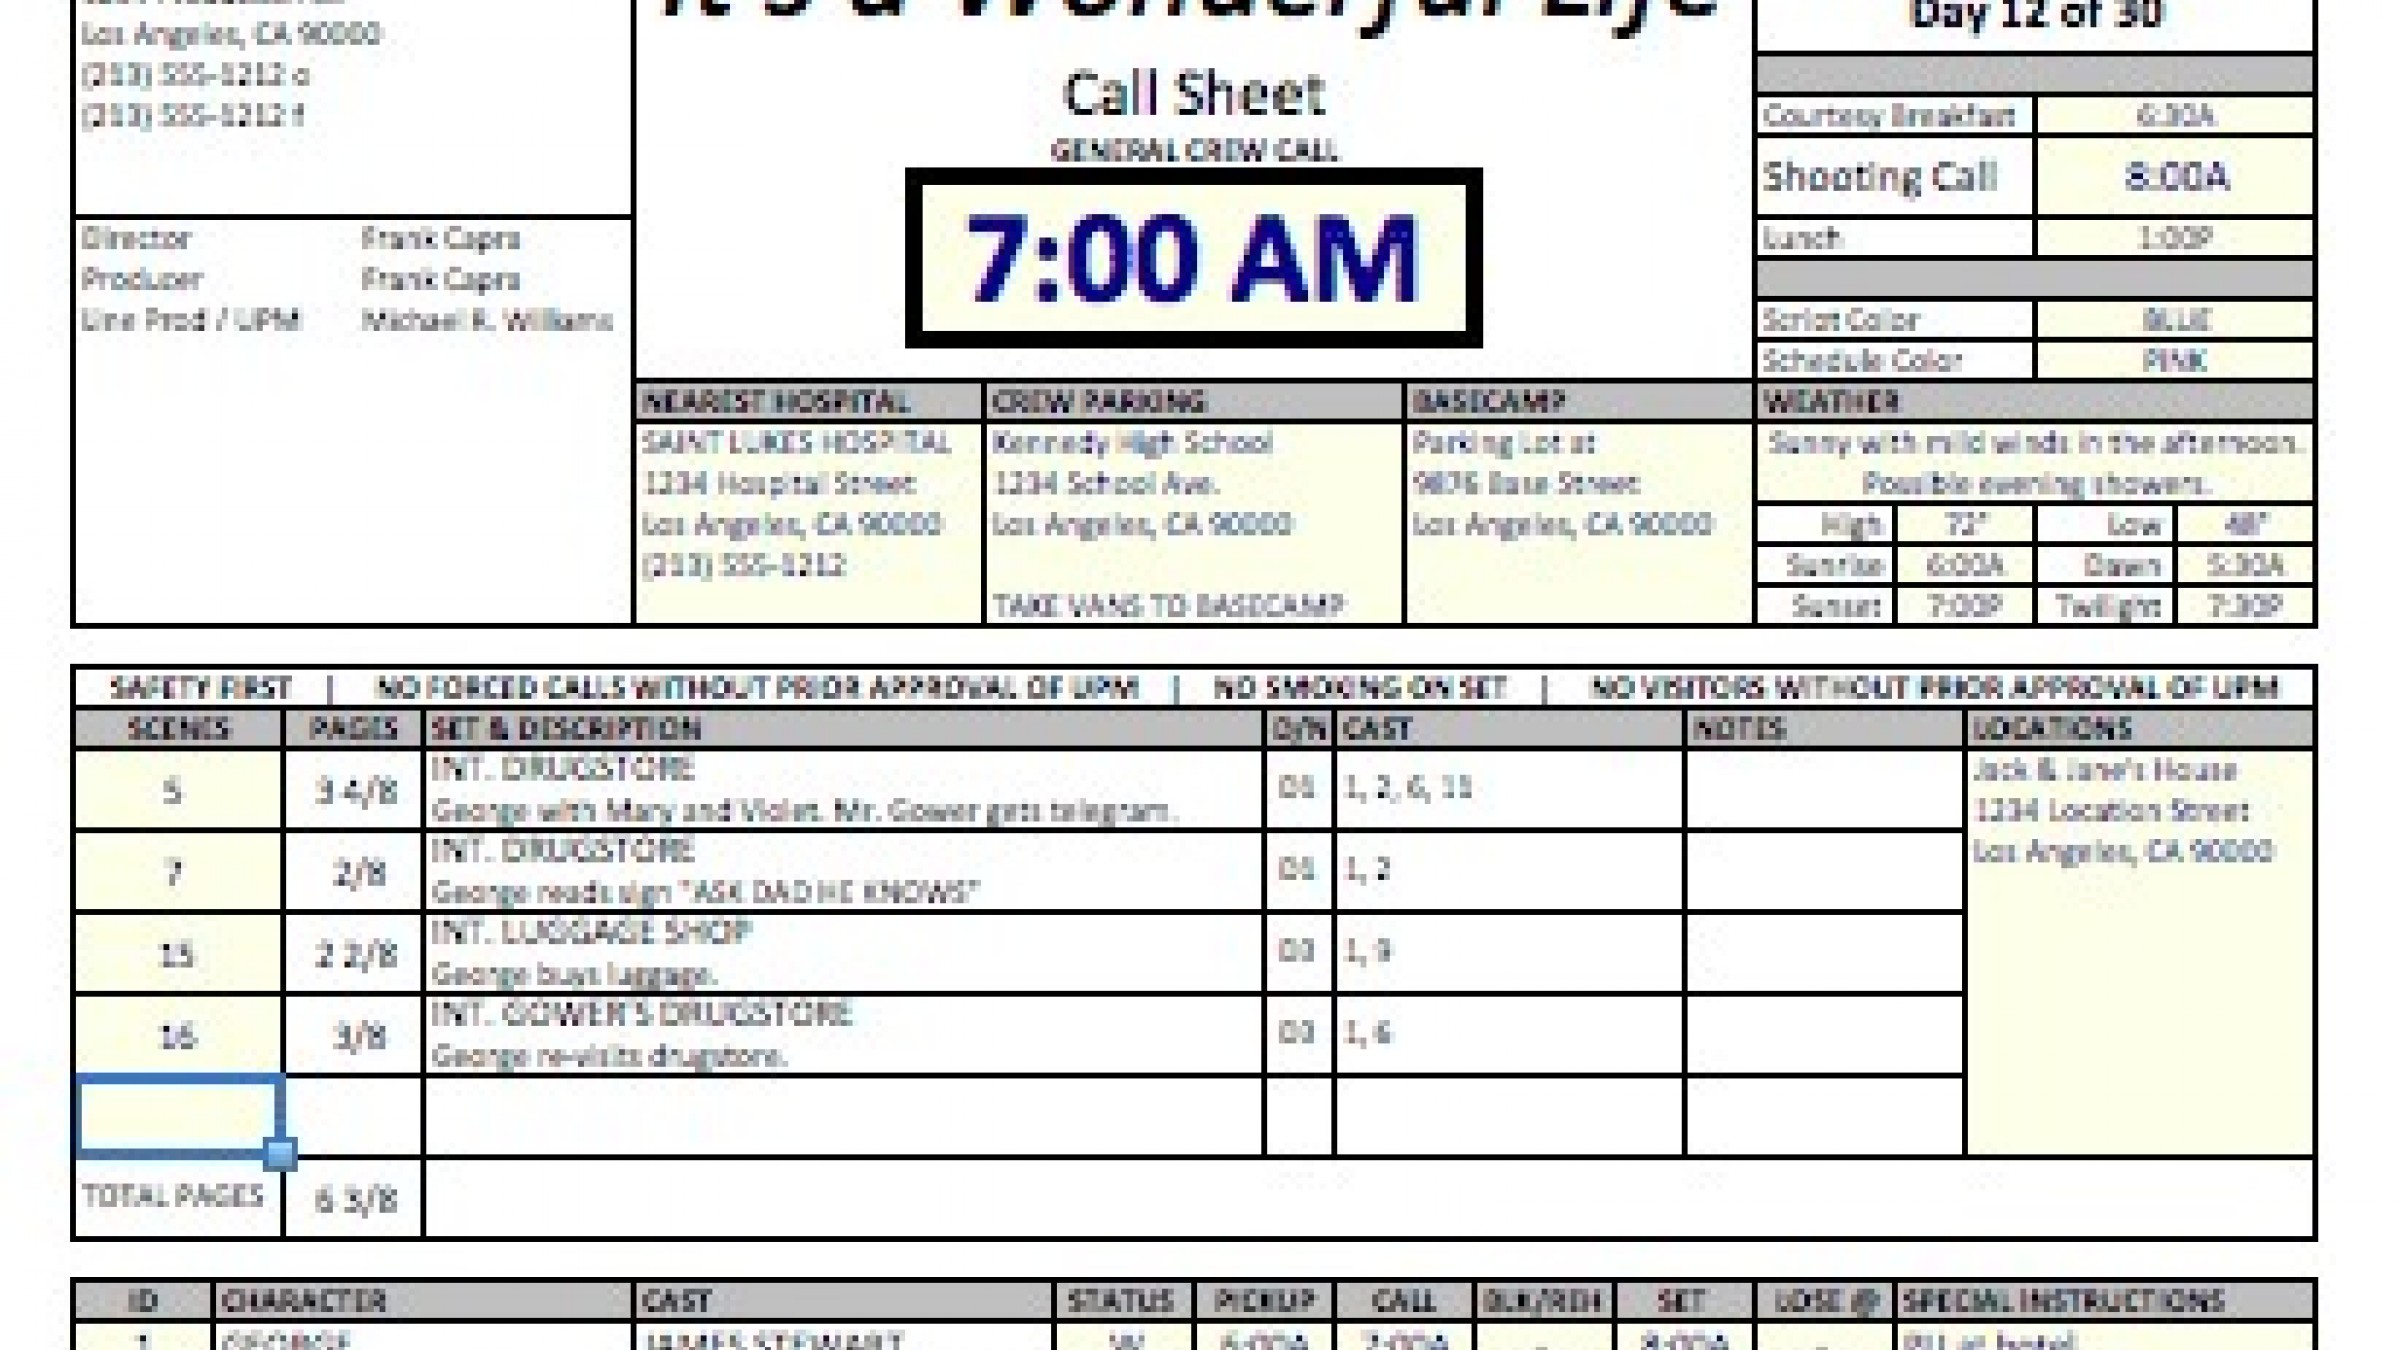 Casper' Spreadsheet Template Makes Call Sheets and Production ...